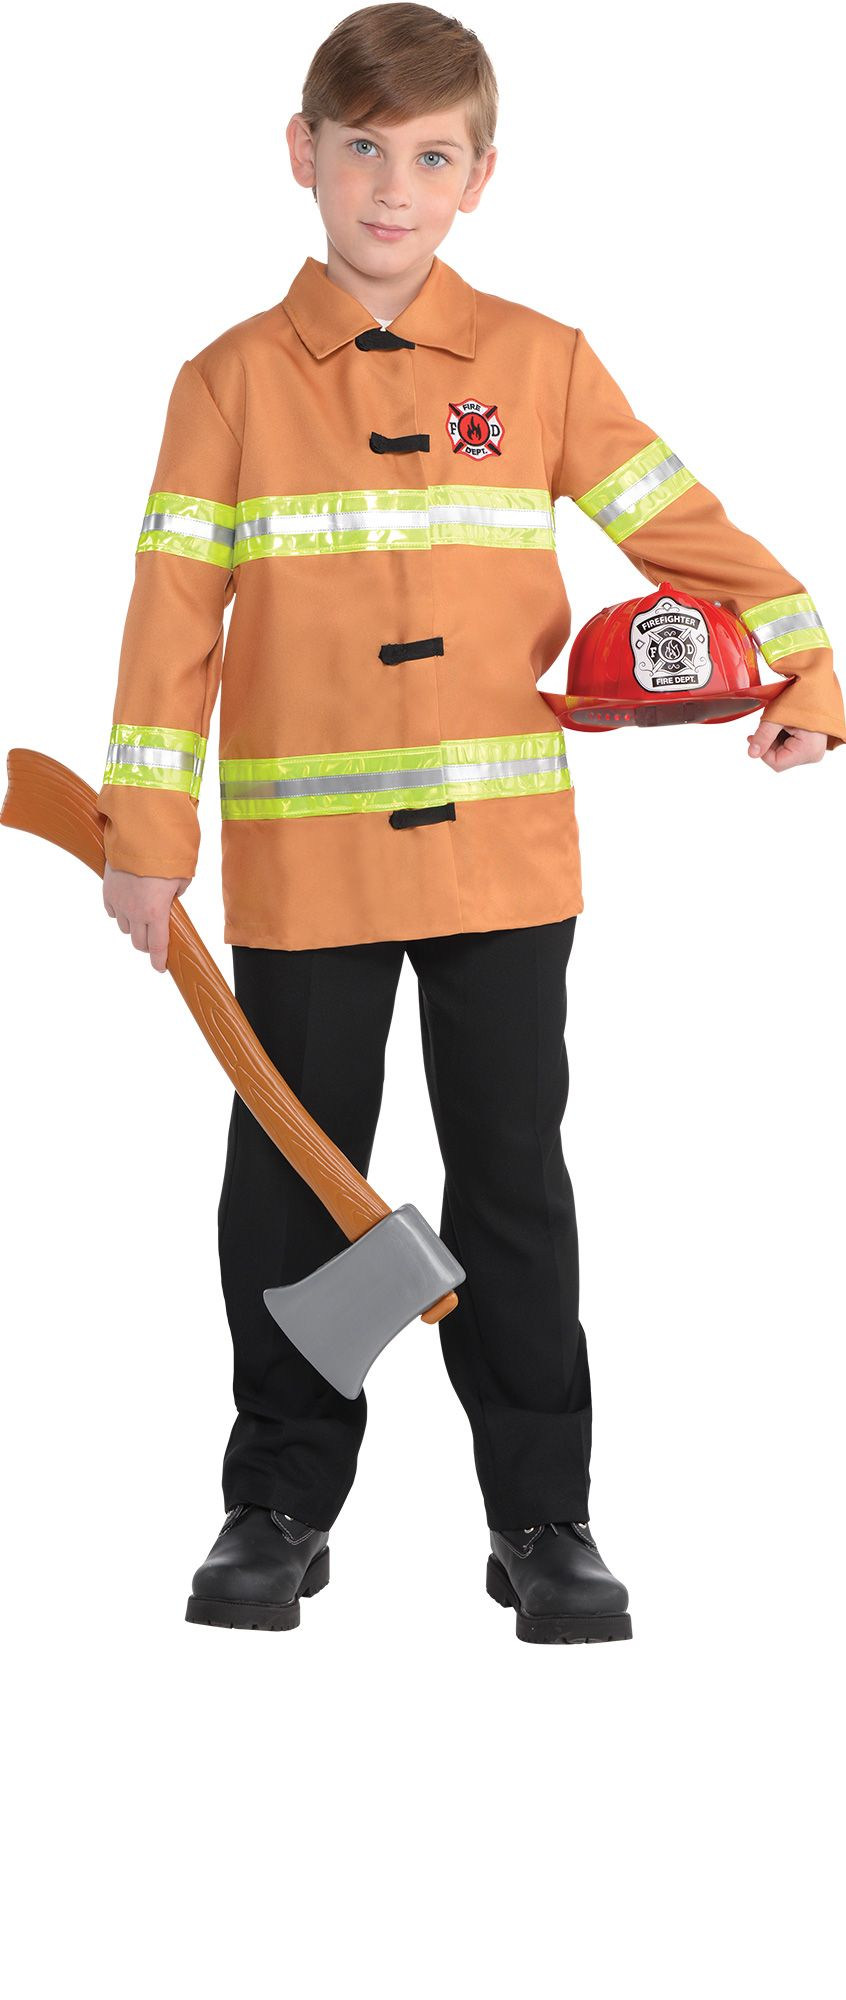 Make Your Costume - Boys Fire Fighter